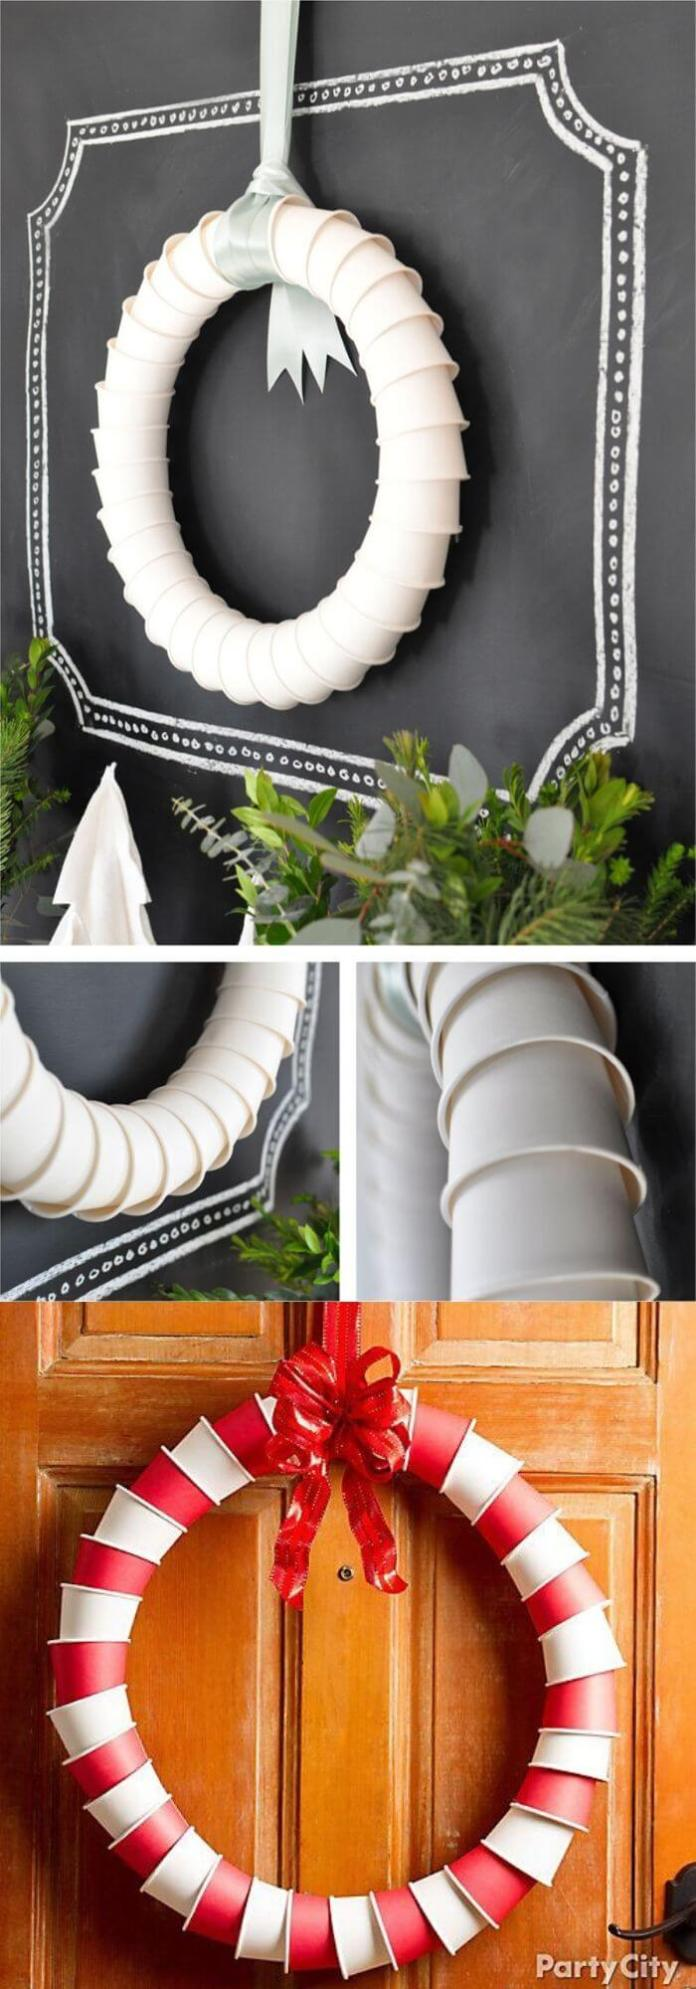 Paper Cup Wreath